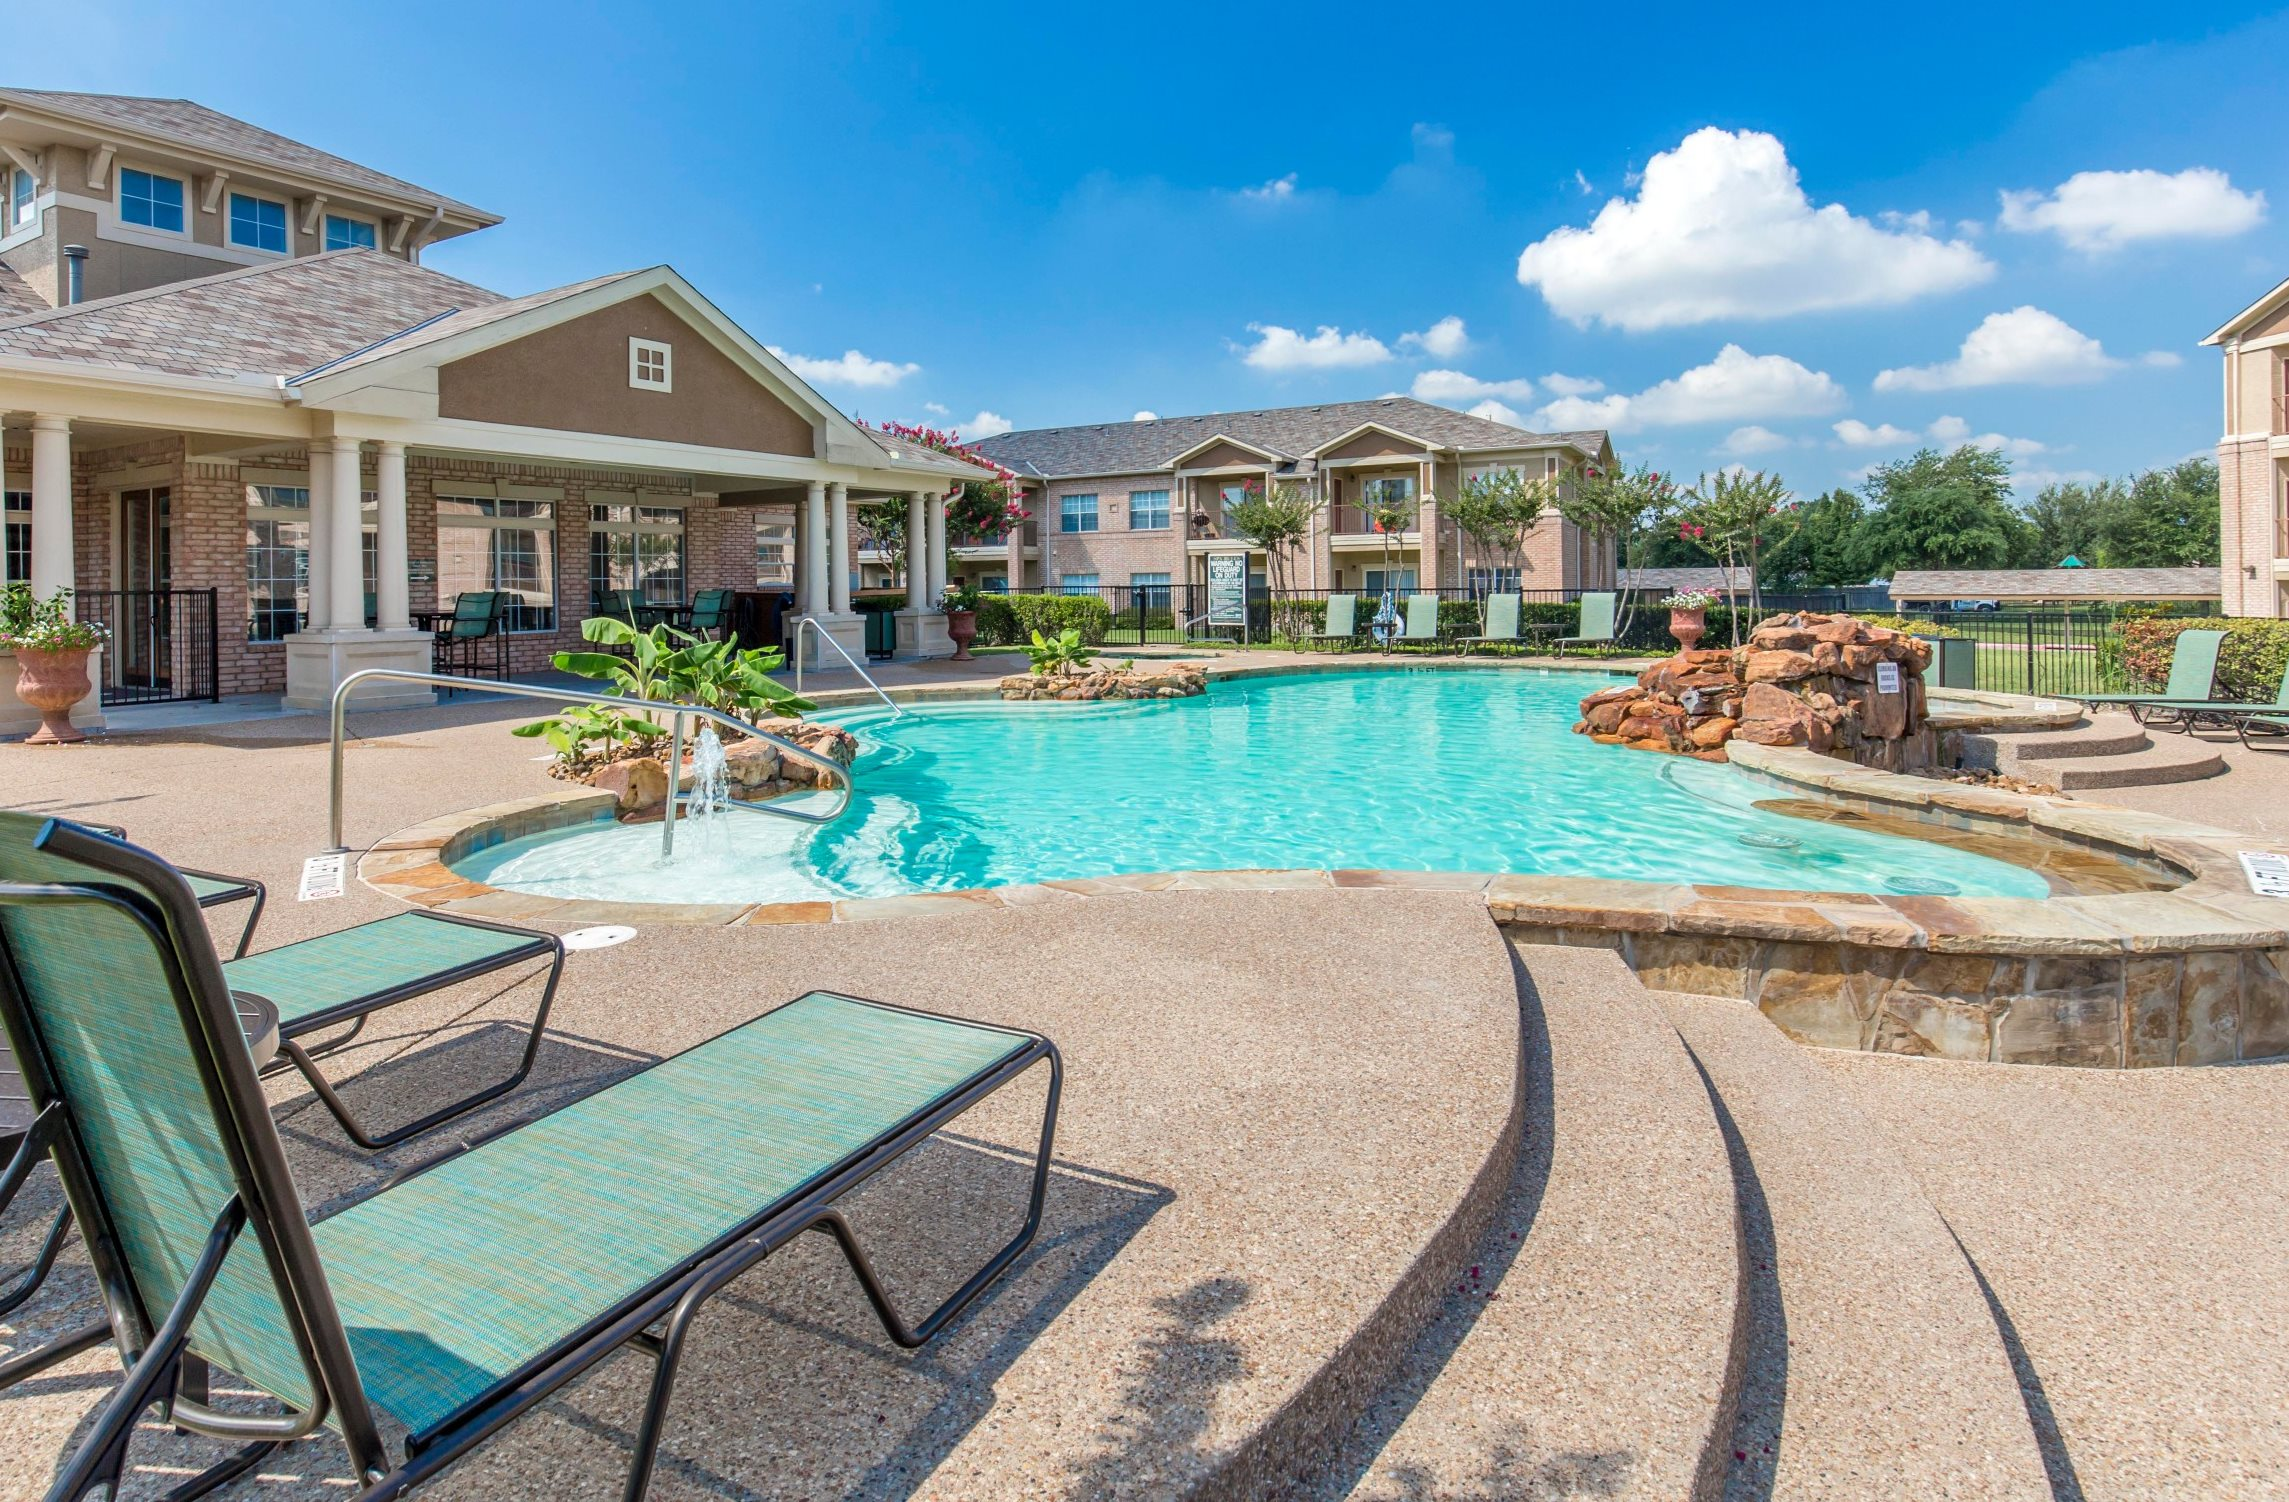 Villas Of El Dorado Apartments In Mckinney Tx